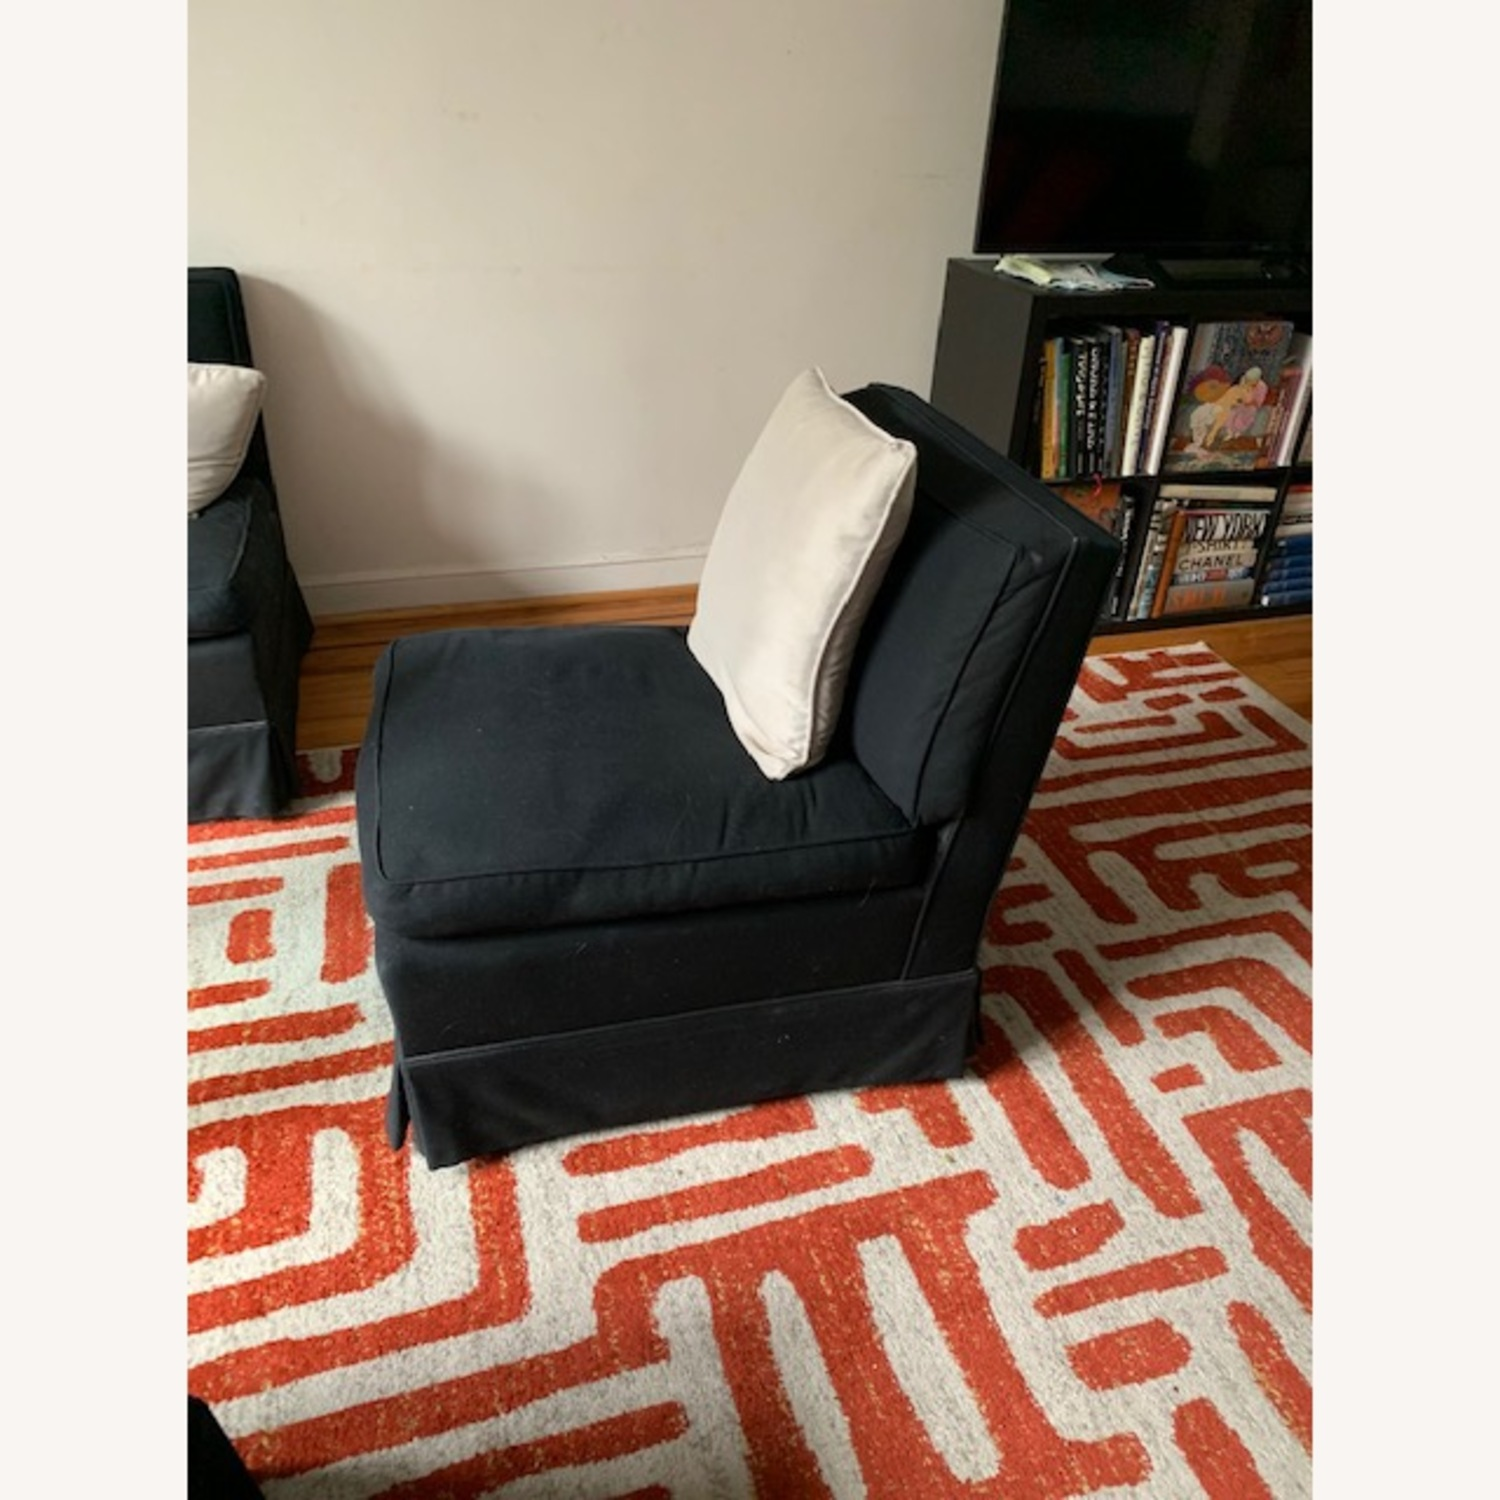 4 Contemporary Modern Chairs - image-2